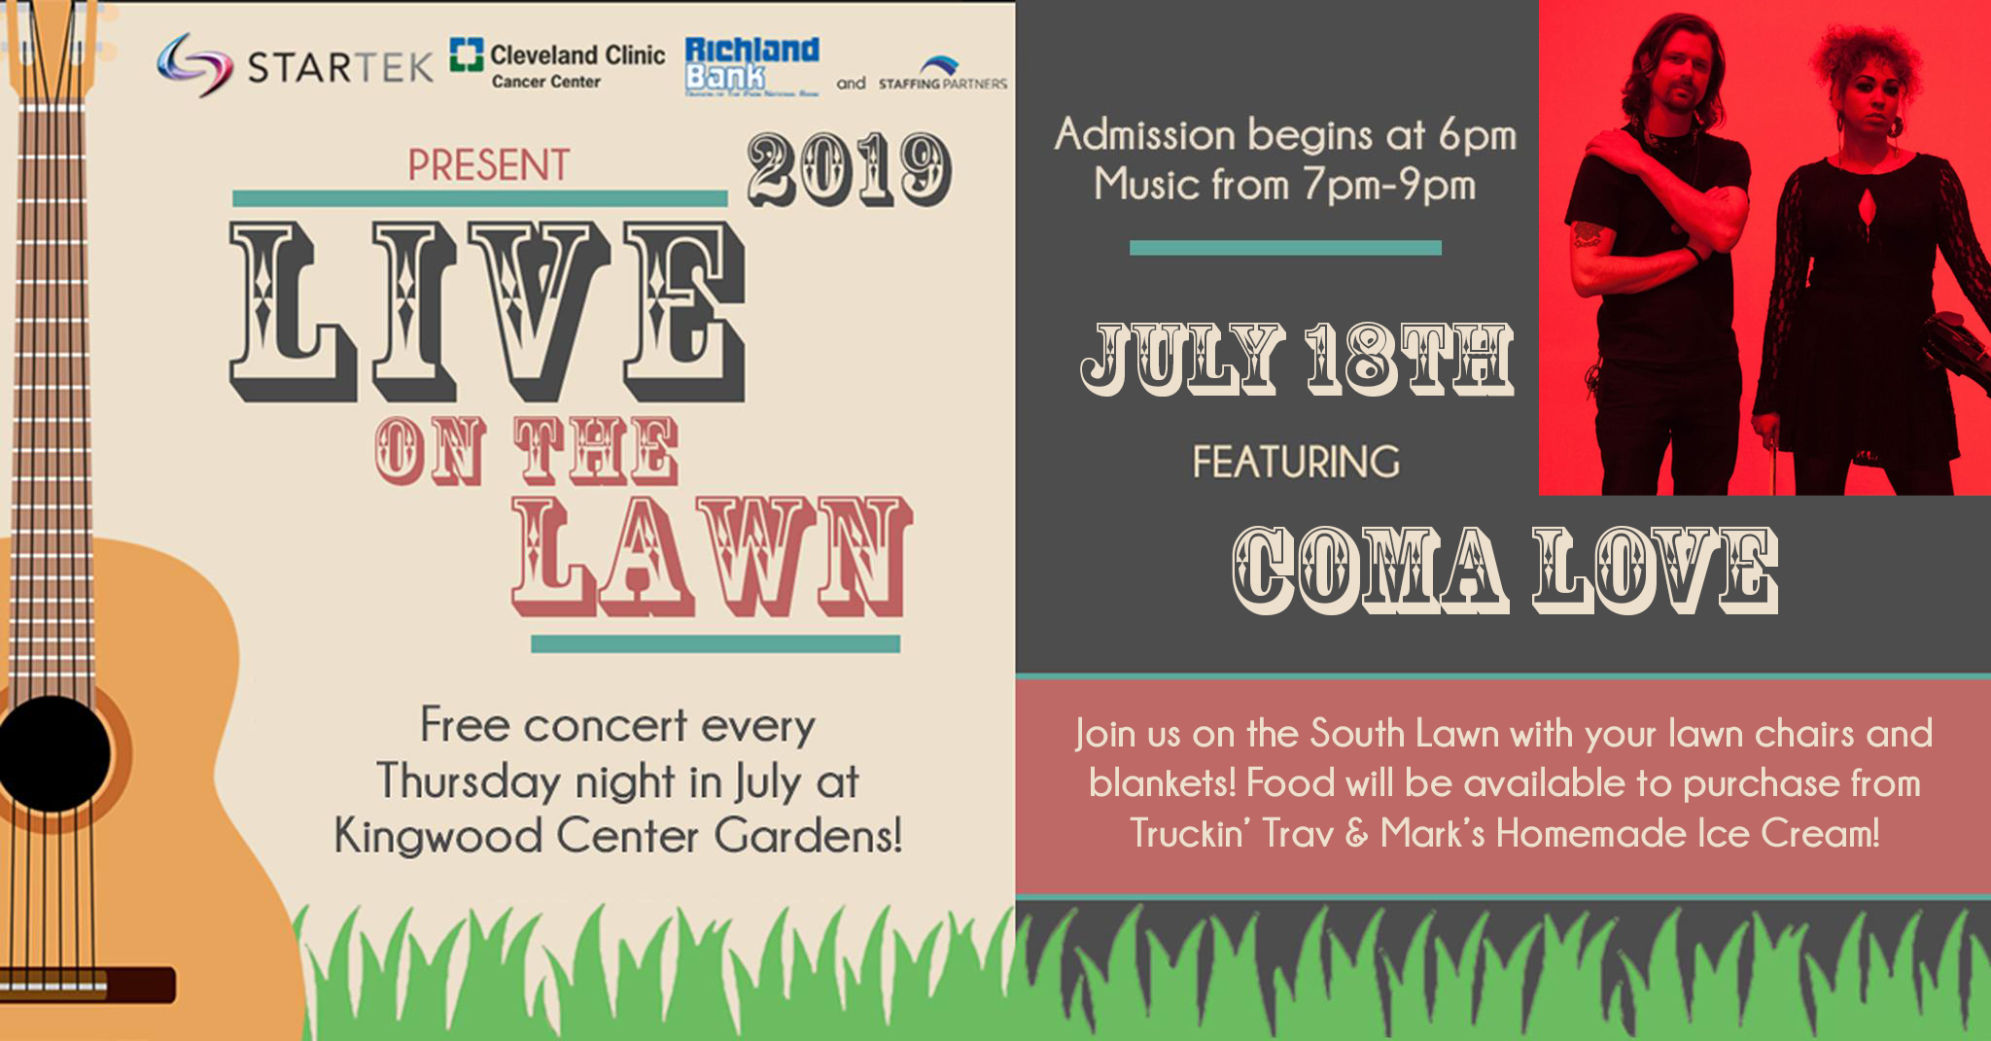 Kingwood's Live on the Lawn concert feat. Coma Love on July 18